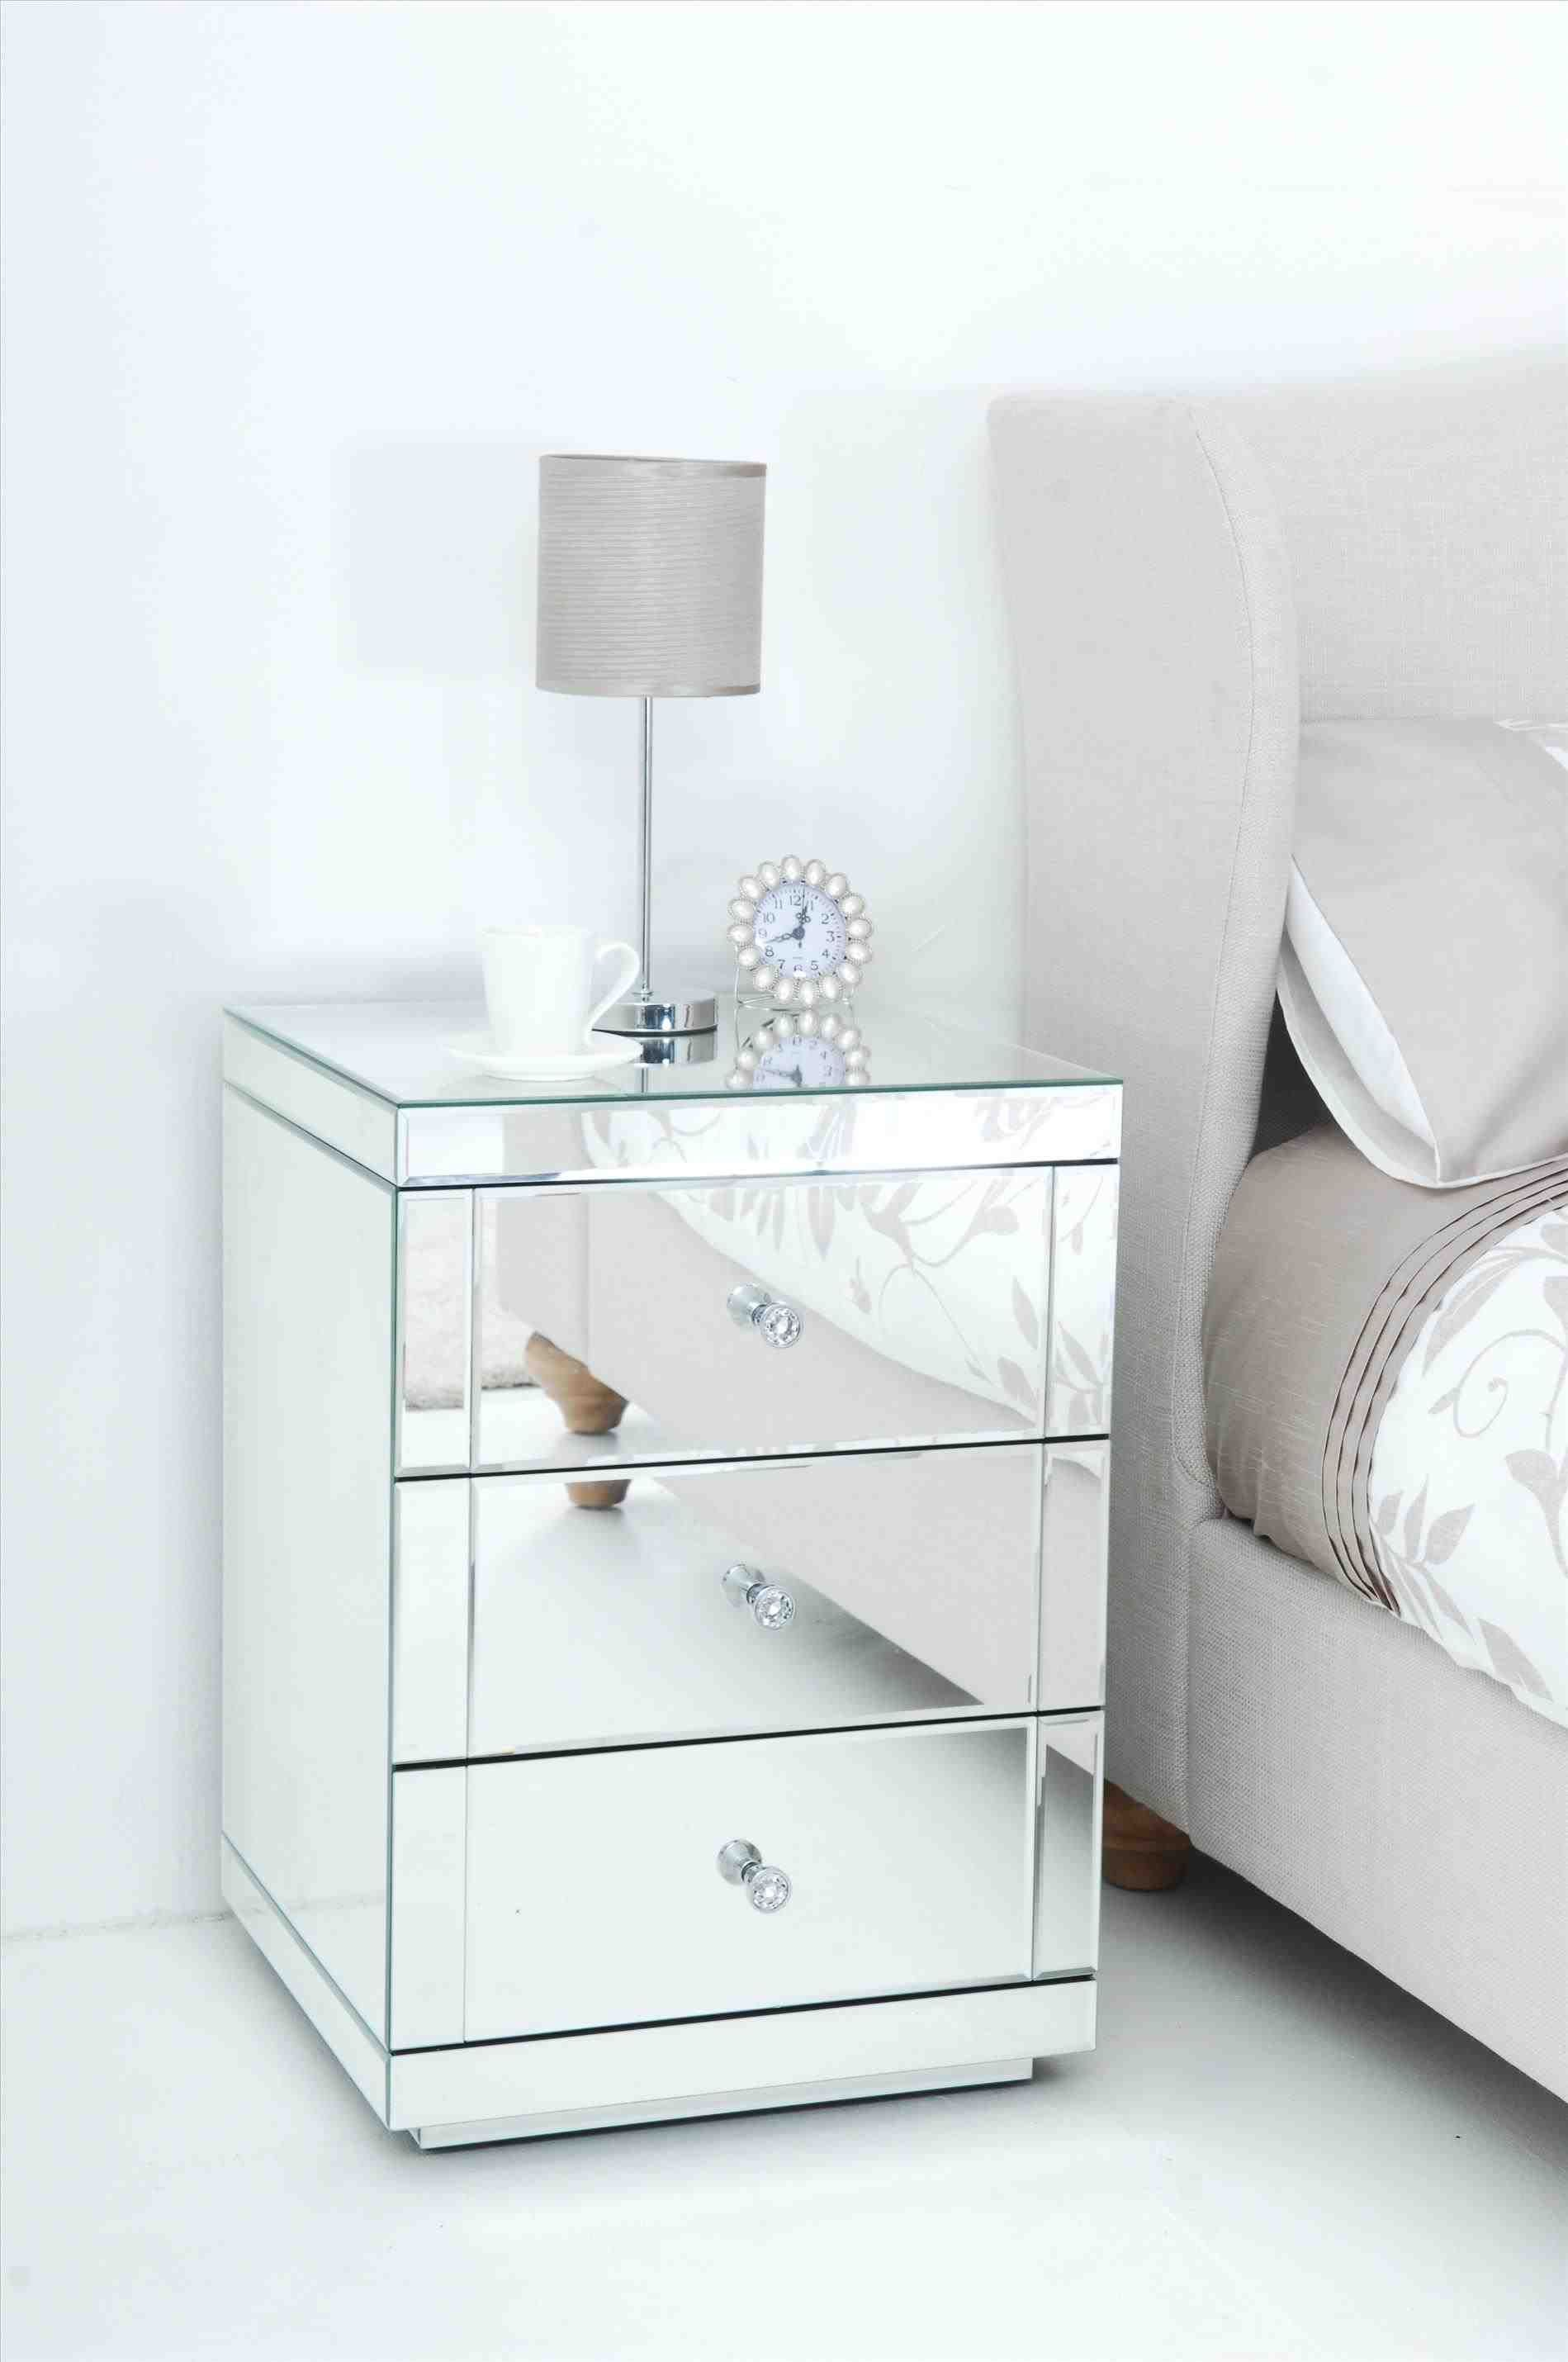 New White Mirrored Bedside Table At Temasistemi